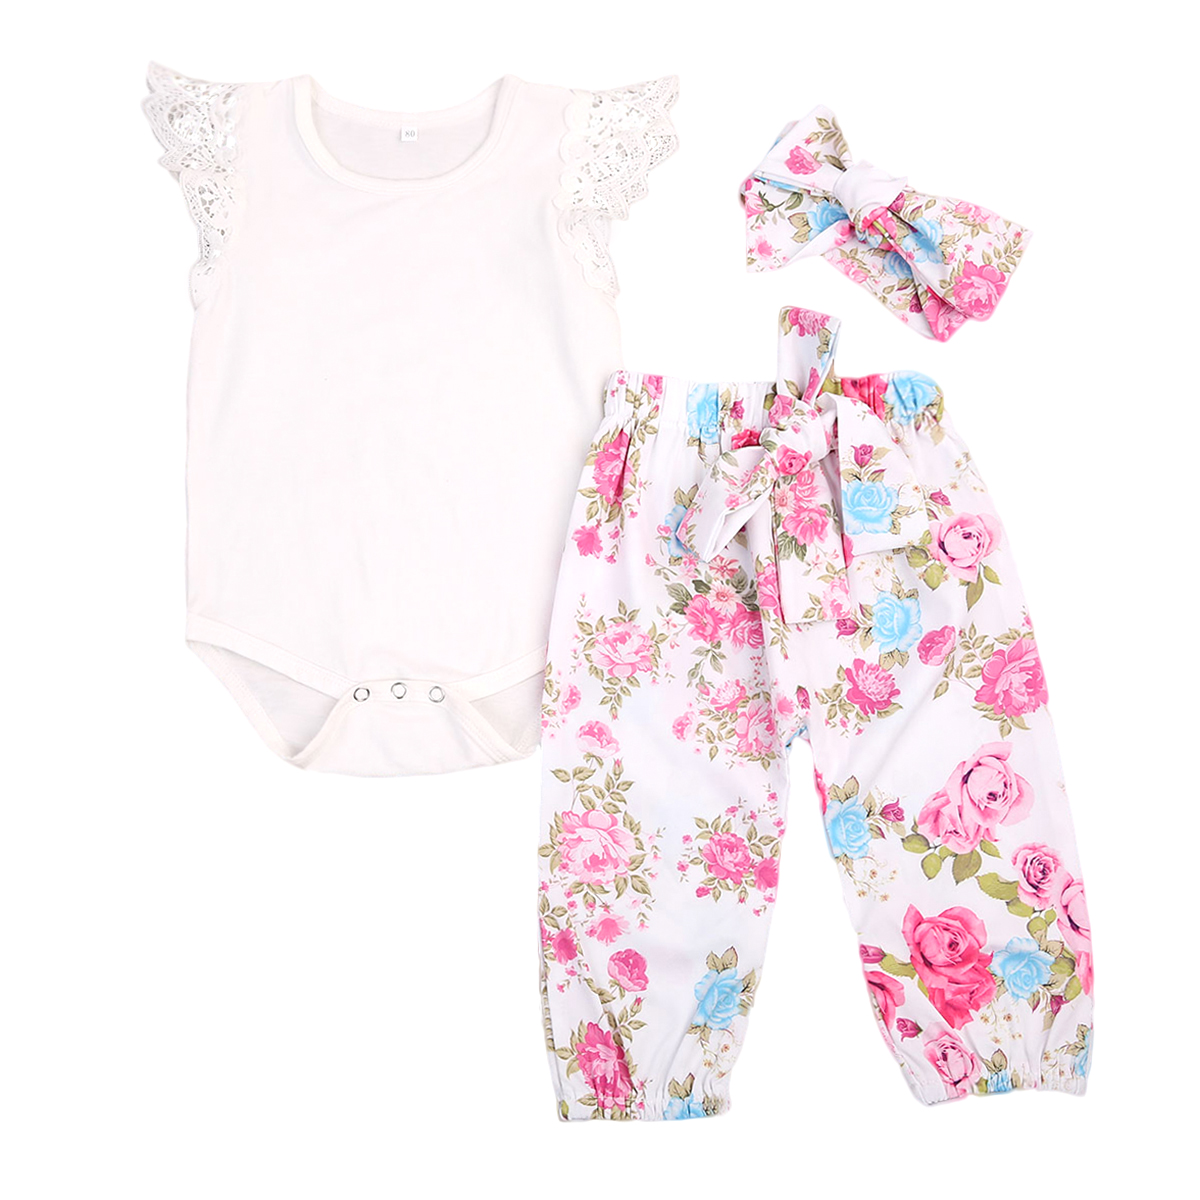 US Stock Floral Newborn Baby Girls Lace Romper Pants Headband Outfit Set Clothes Infant Toddler Girl Brief Clothing Set Playsuit newborn infant baby girl clothes strap lace floral romper jumpsuit outfit summer cotton backless one pieces outfit baby onesie